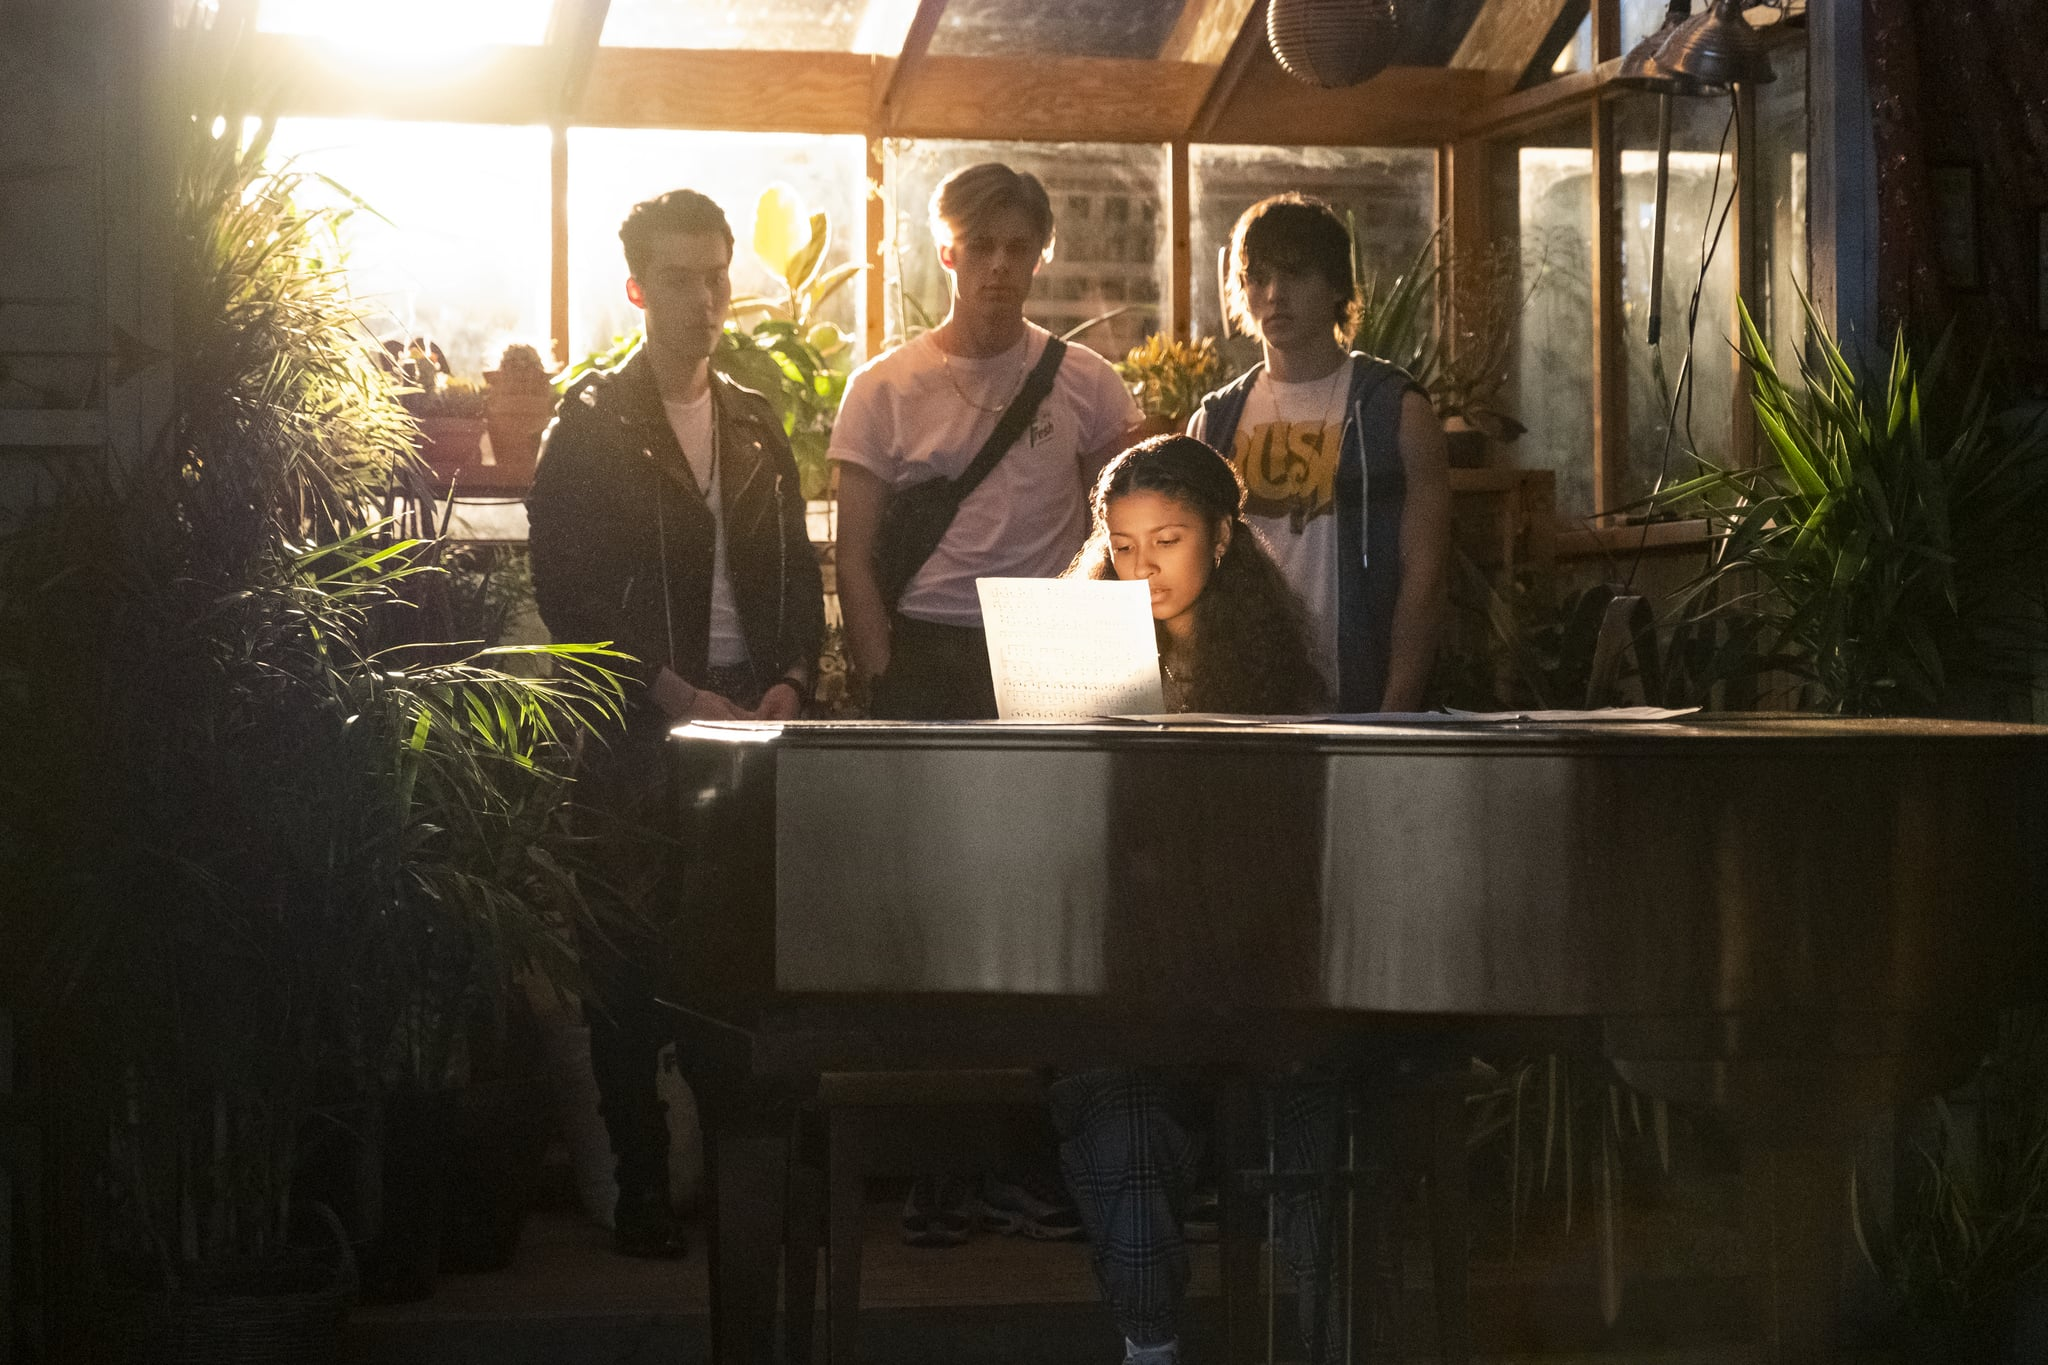 JULIE AND THE PHANTOMS (L to R) JEREMY SHADA as REGGIE, OWEN JOYNER as ALEX, MADISON REYES as JULIE, and CHARLIE GILLESPIE as LUKE in episode 101 of JULIE AND THE PHANTOMS Cr. KAILEY SCHWERMAN/NETFLIX 2020